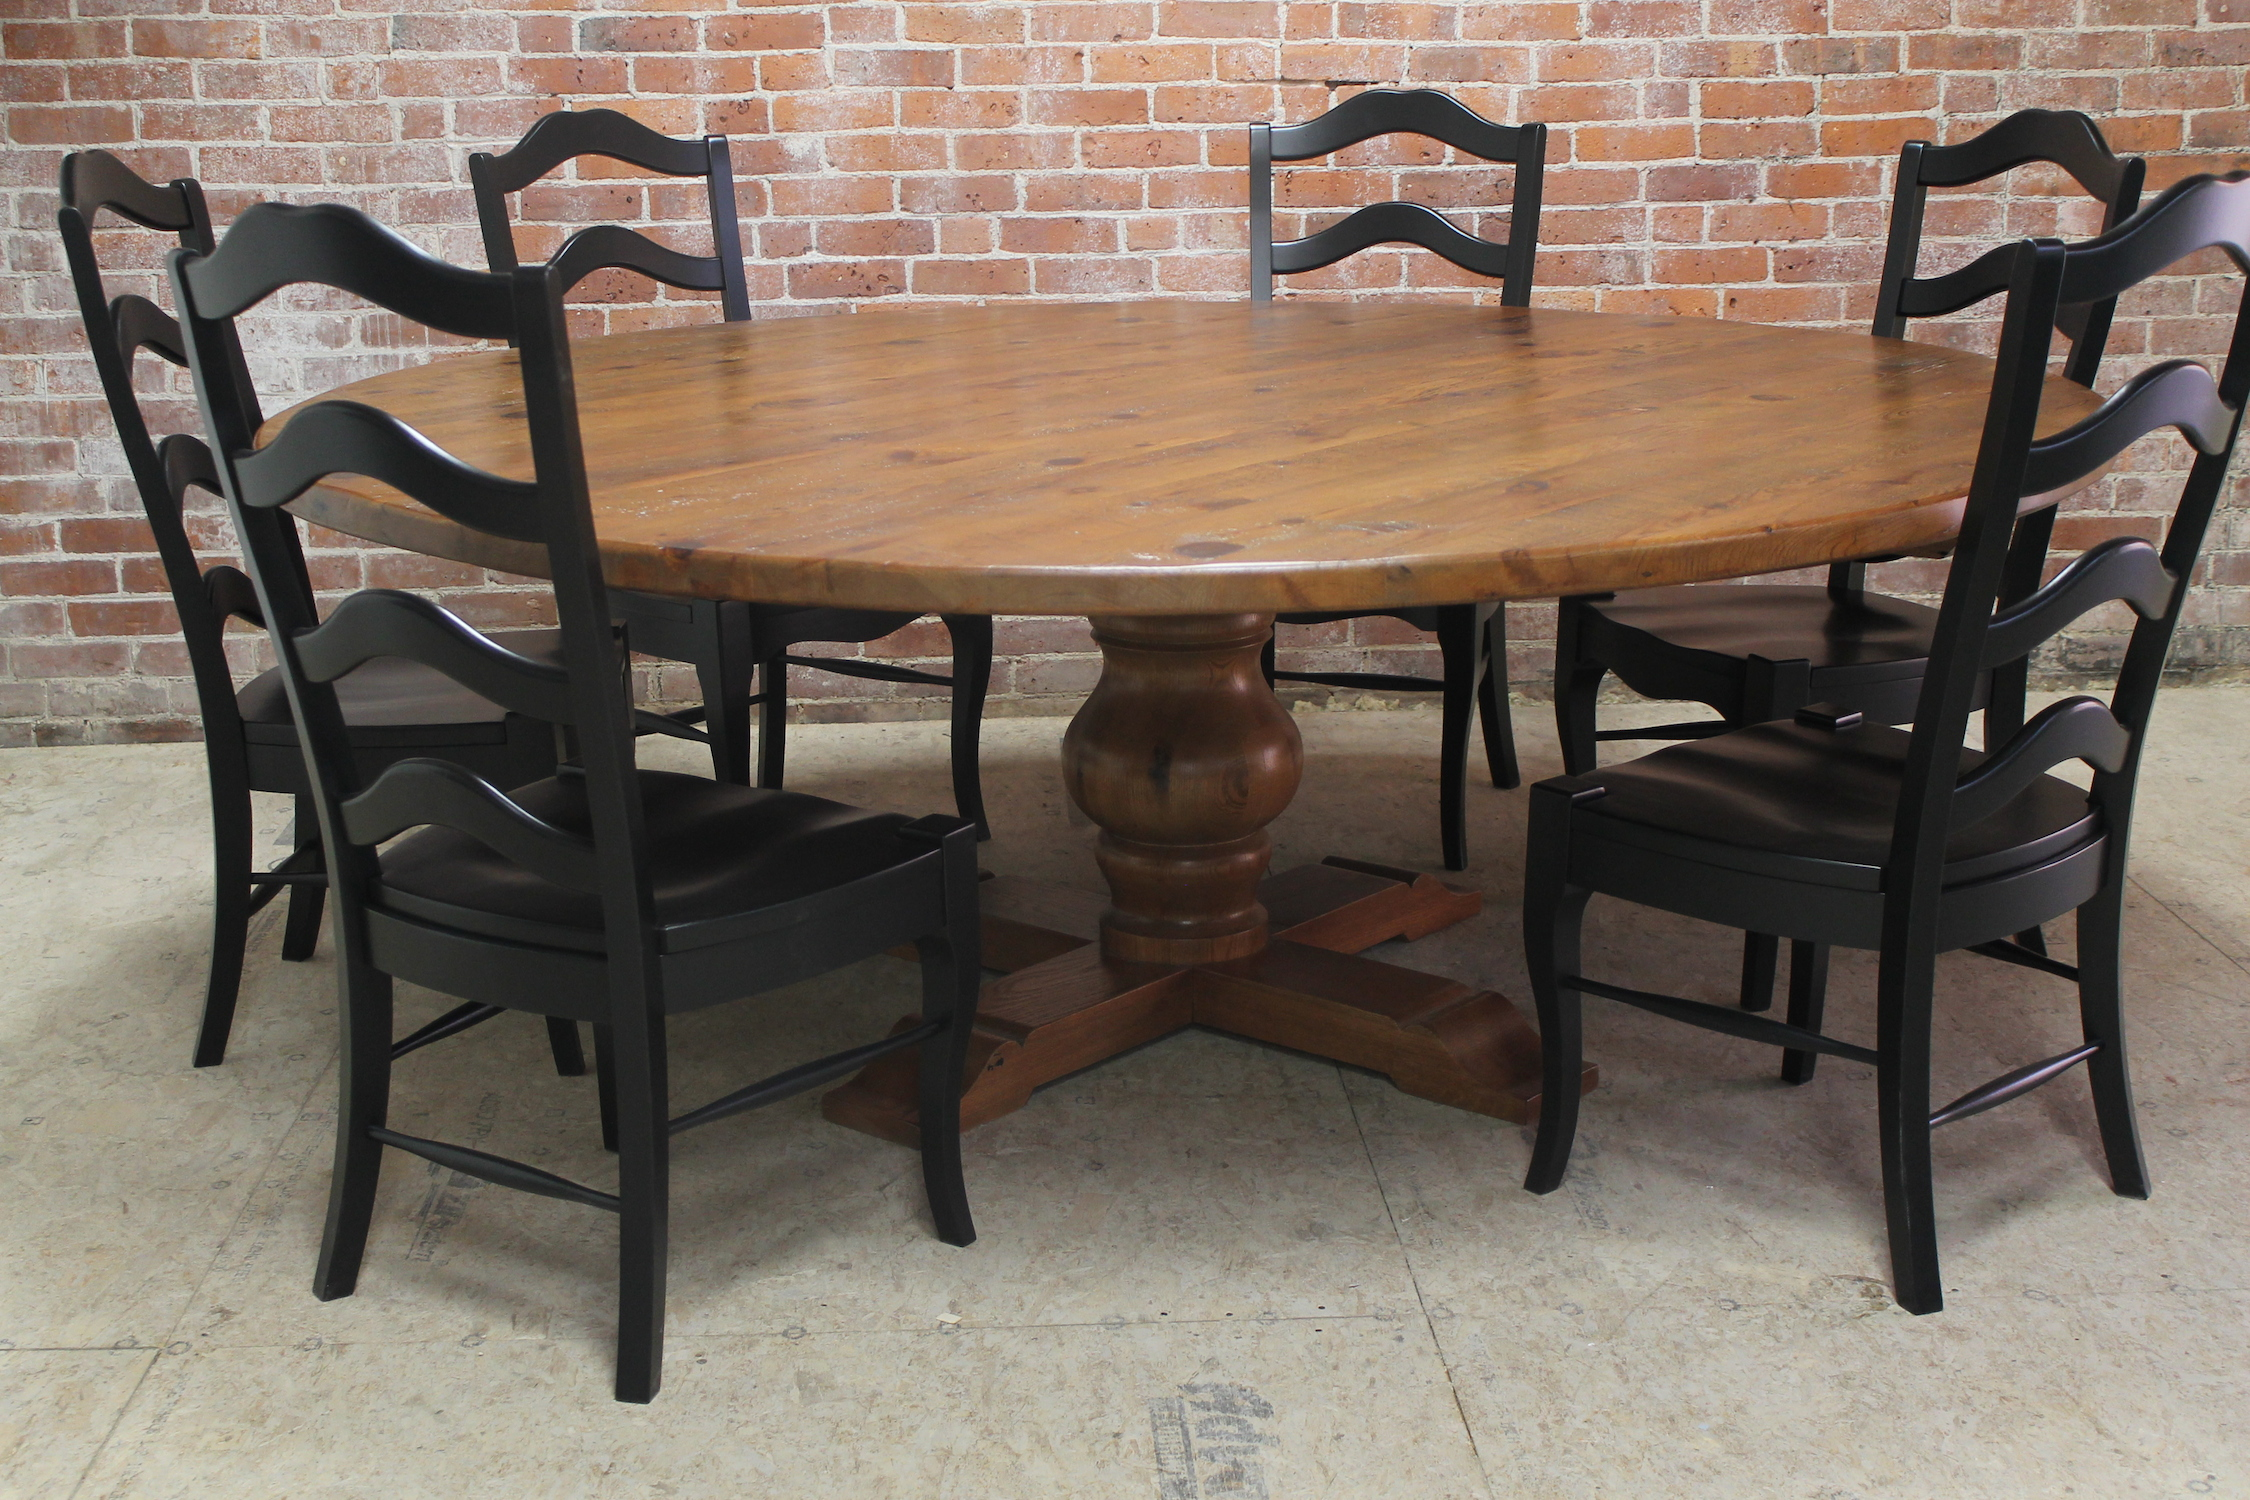 Getting a round dining room table for 6 by your own for Dining room table for 6